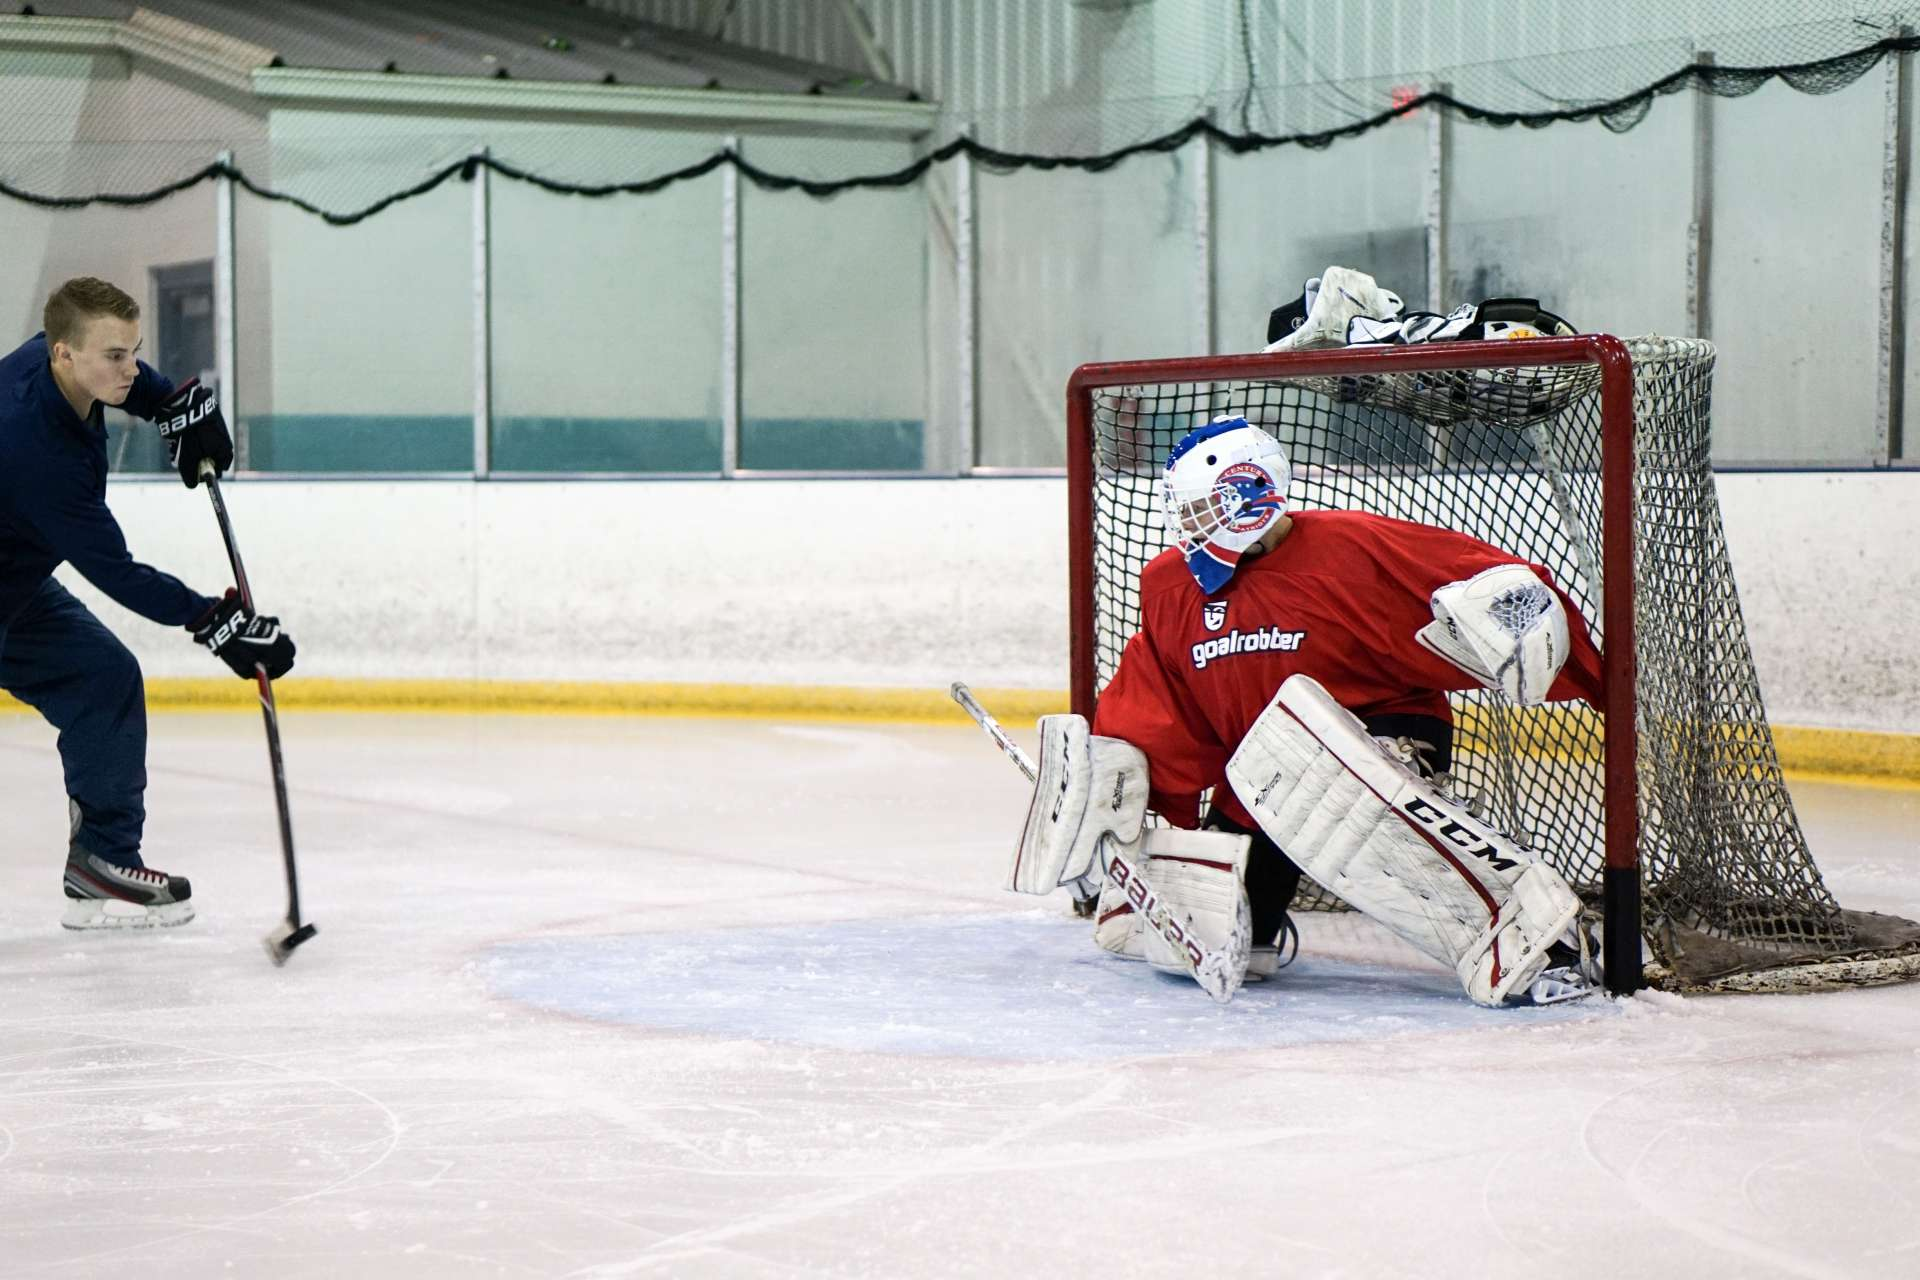 Elite Goalie Training Program Goalrobber Hockey Schools